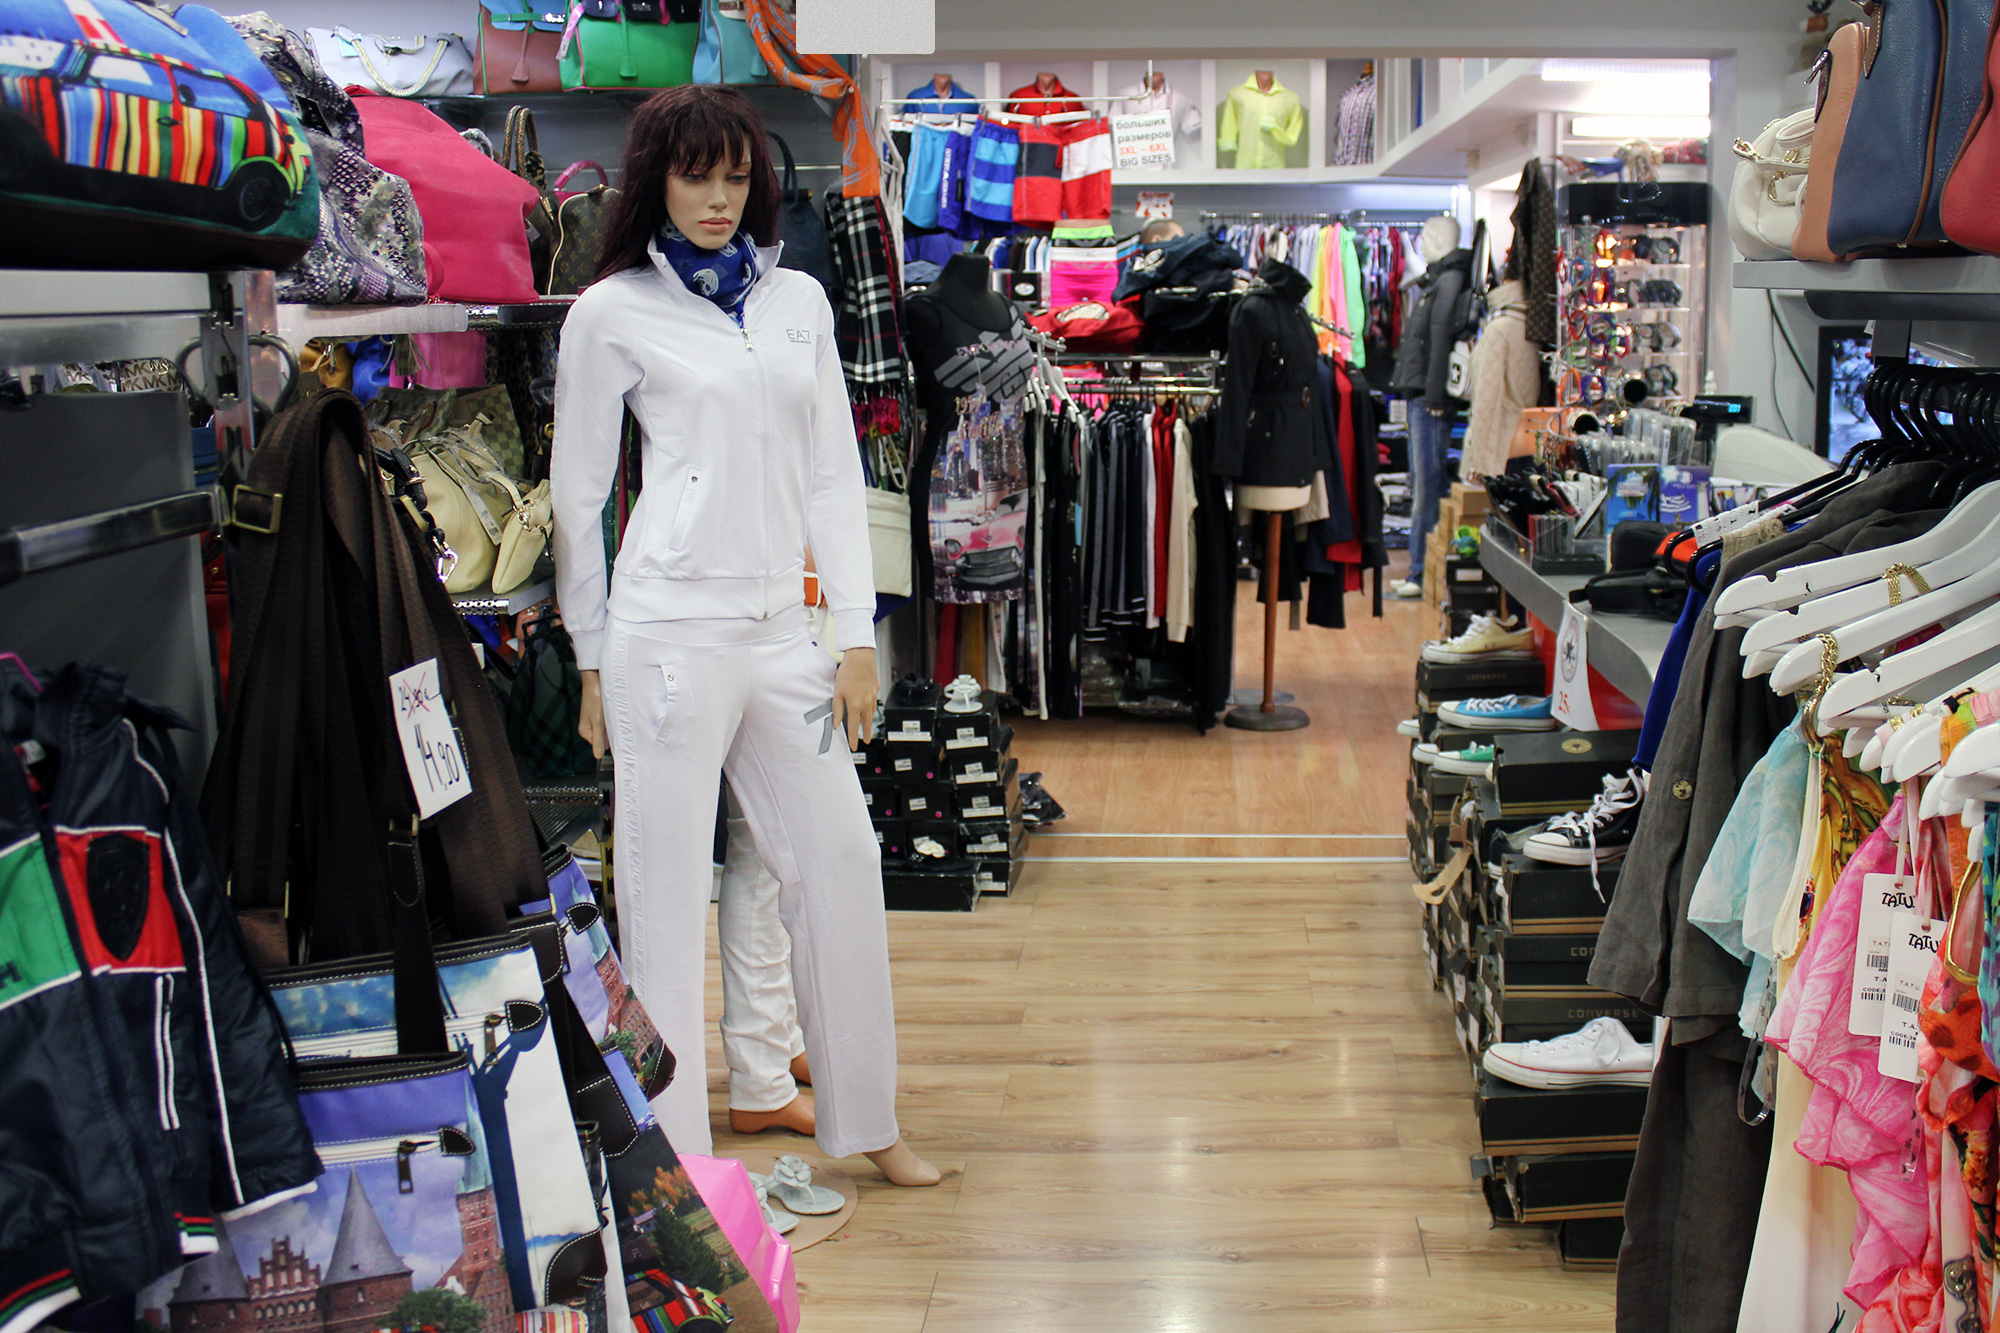 Outlet clothing stores